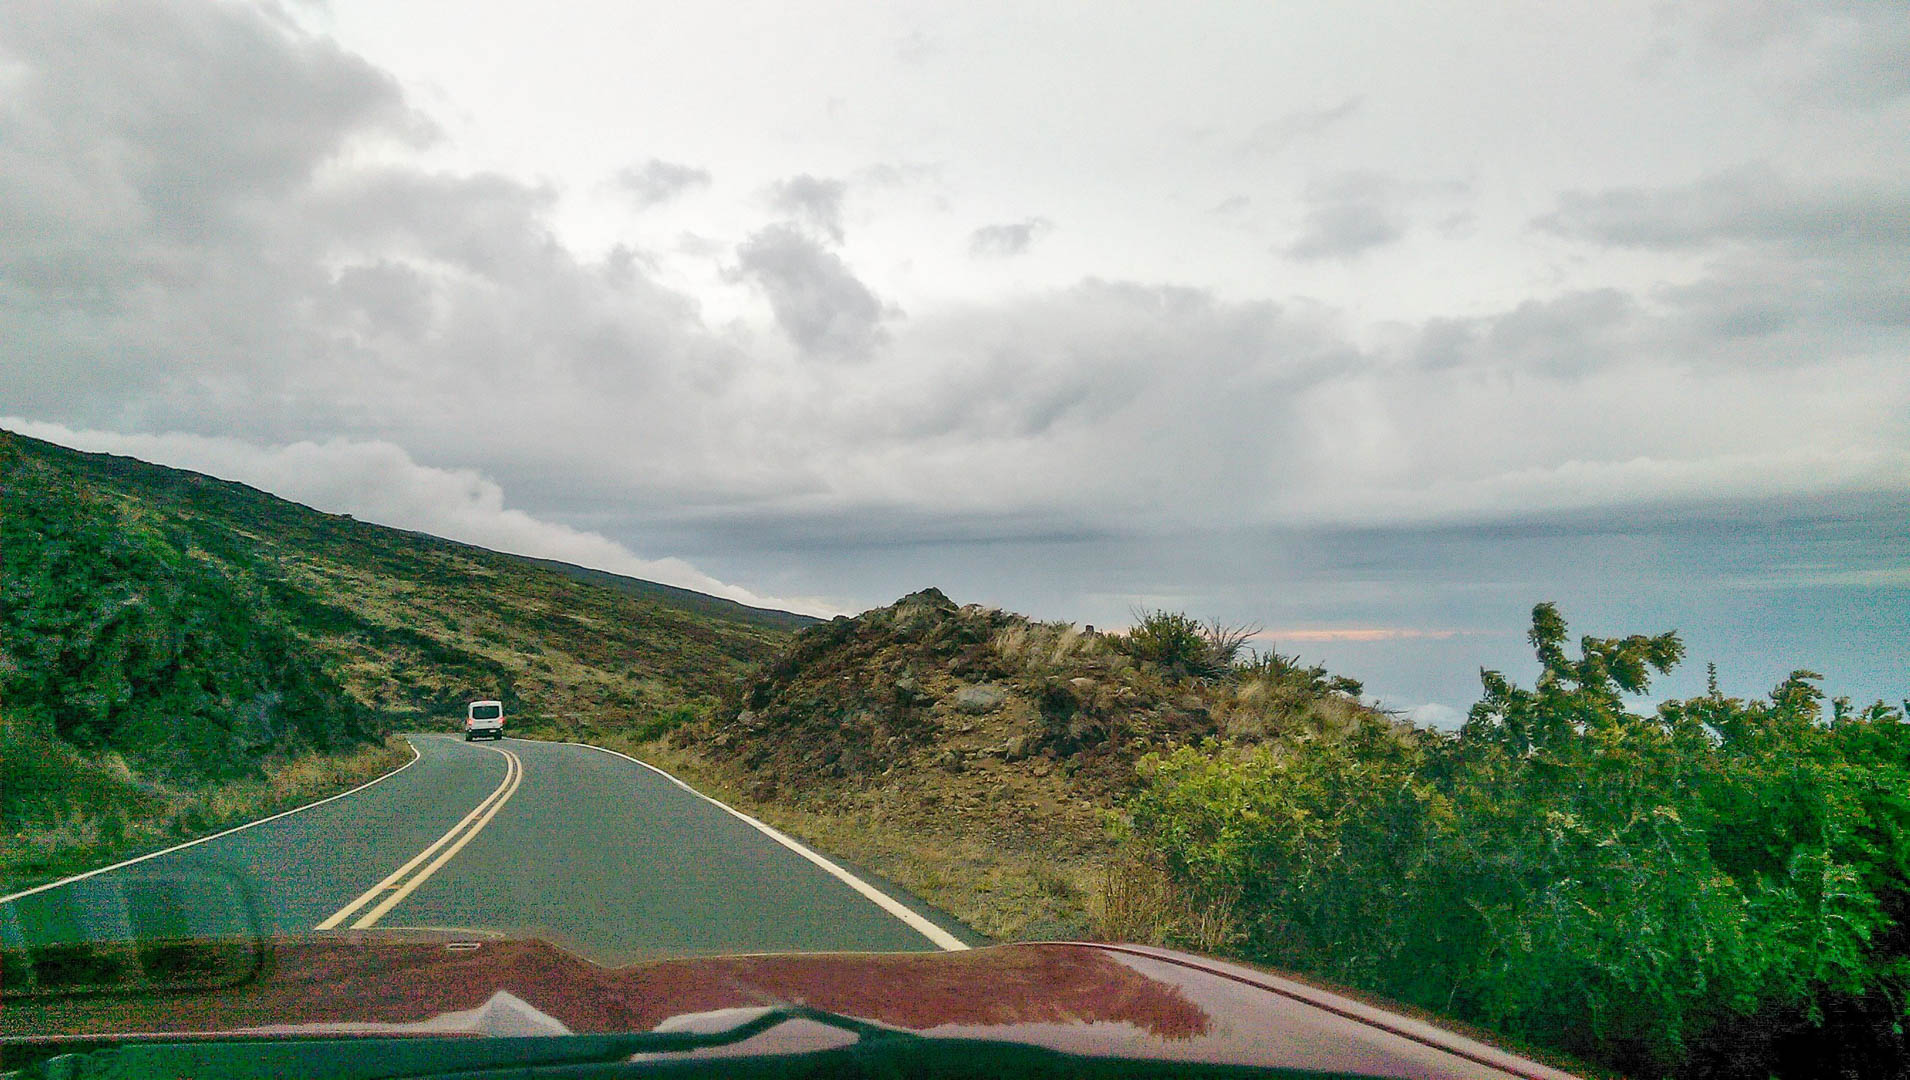 Driving up the mountain